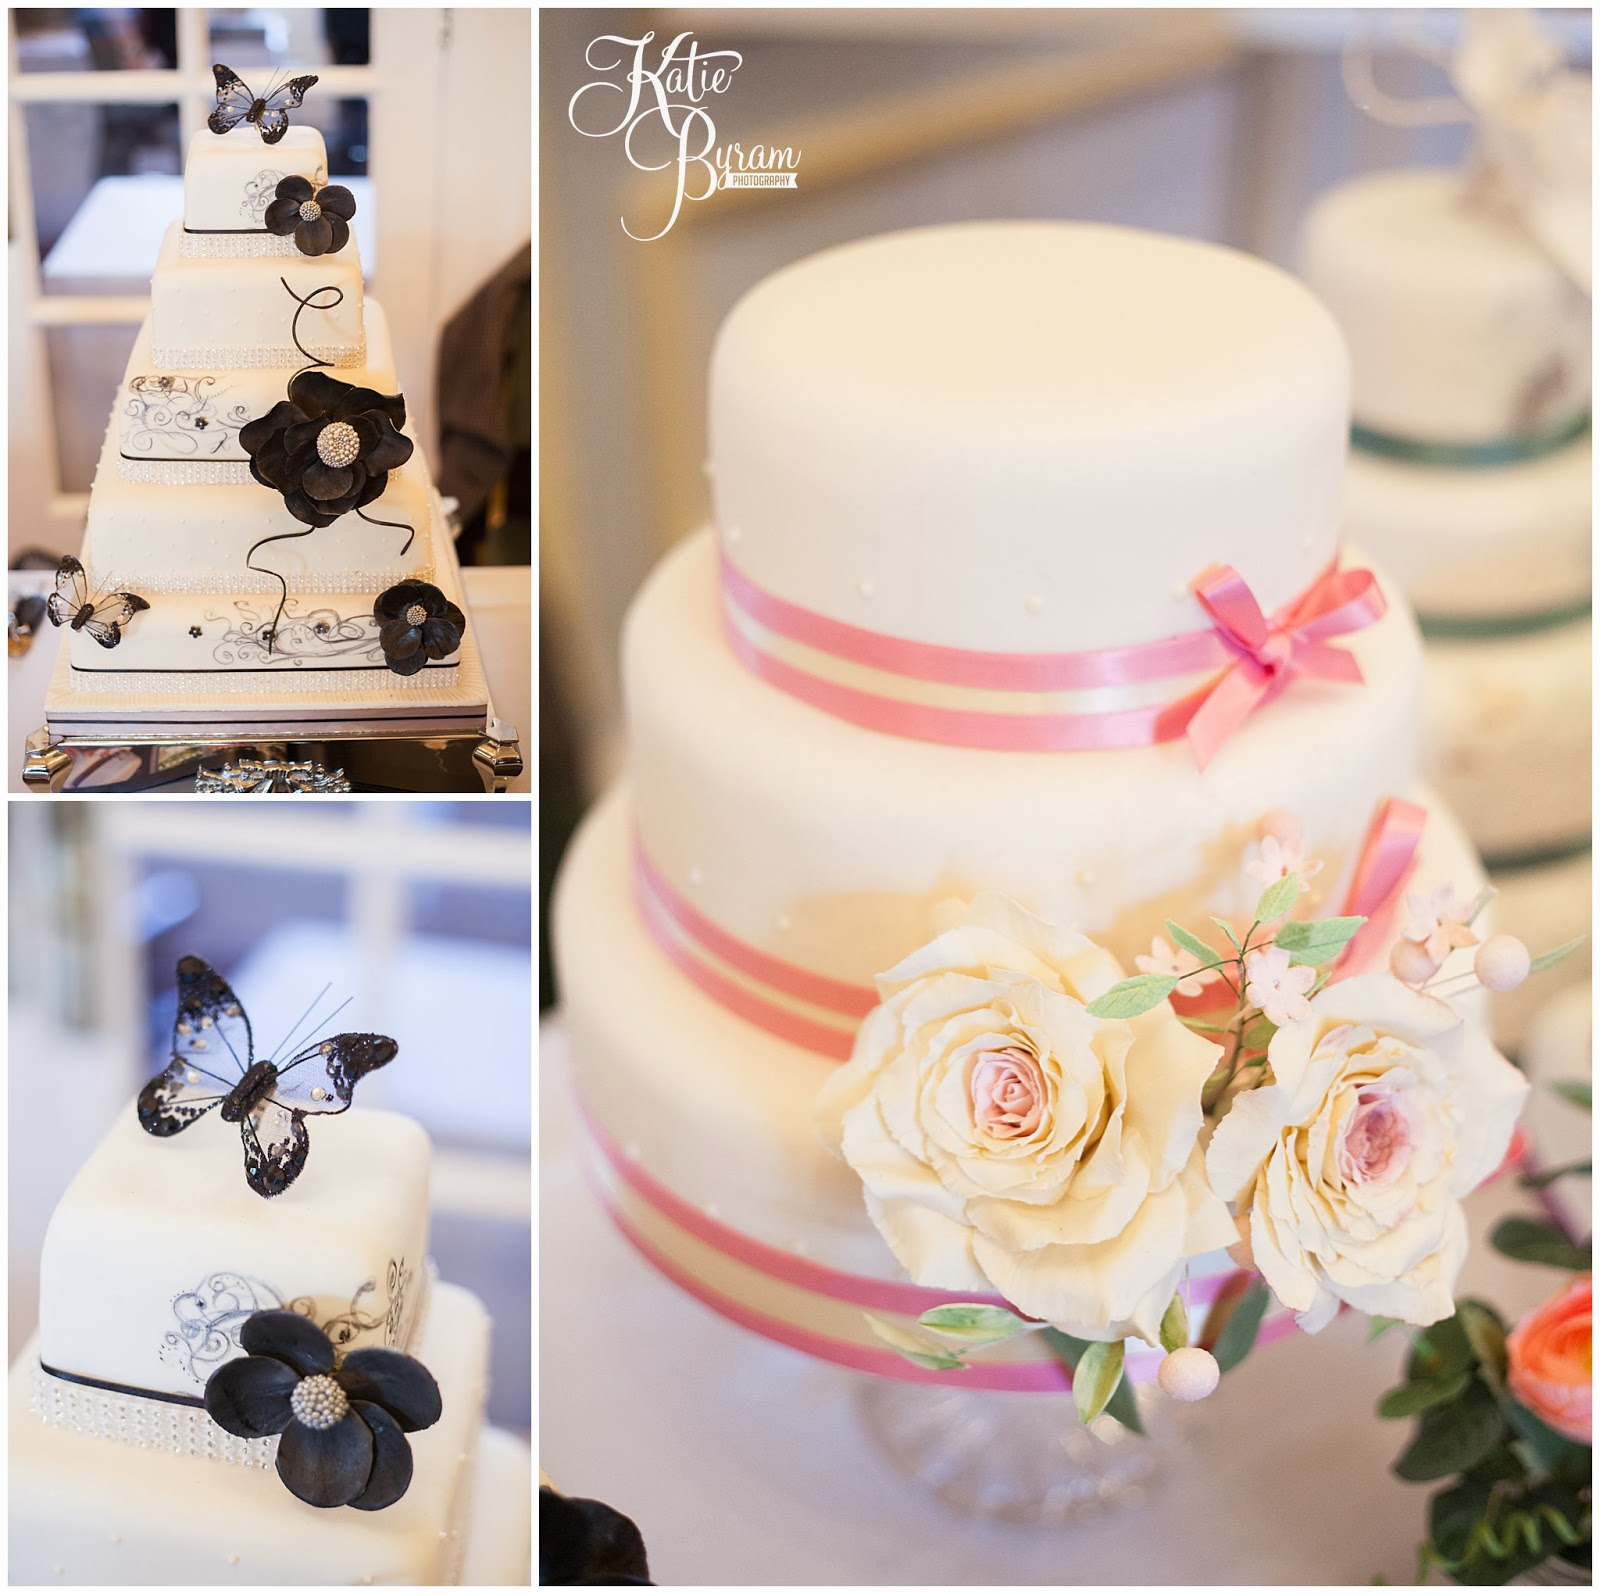 house of cakes, sandra house of cakes, kirkley hall wedding fair, kirkley hall wedding, kirkley hall wedding showcase, katie byram photography, by wendy stationery, floral quarter, mark deeks music, northumberland wedding venue,